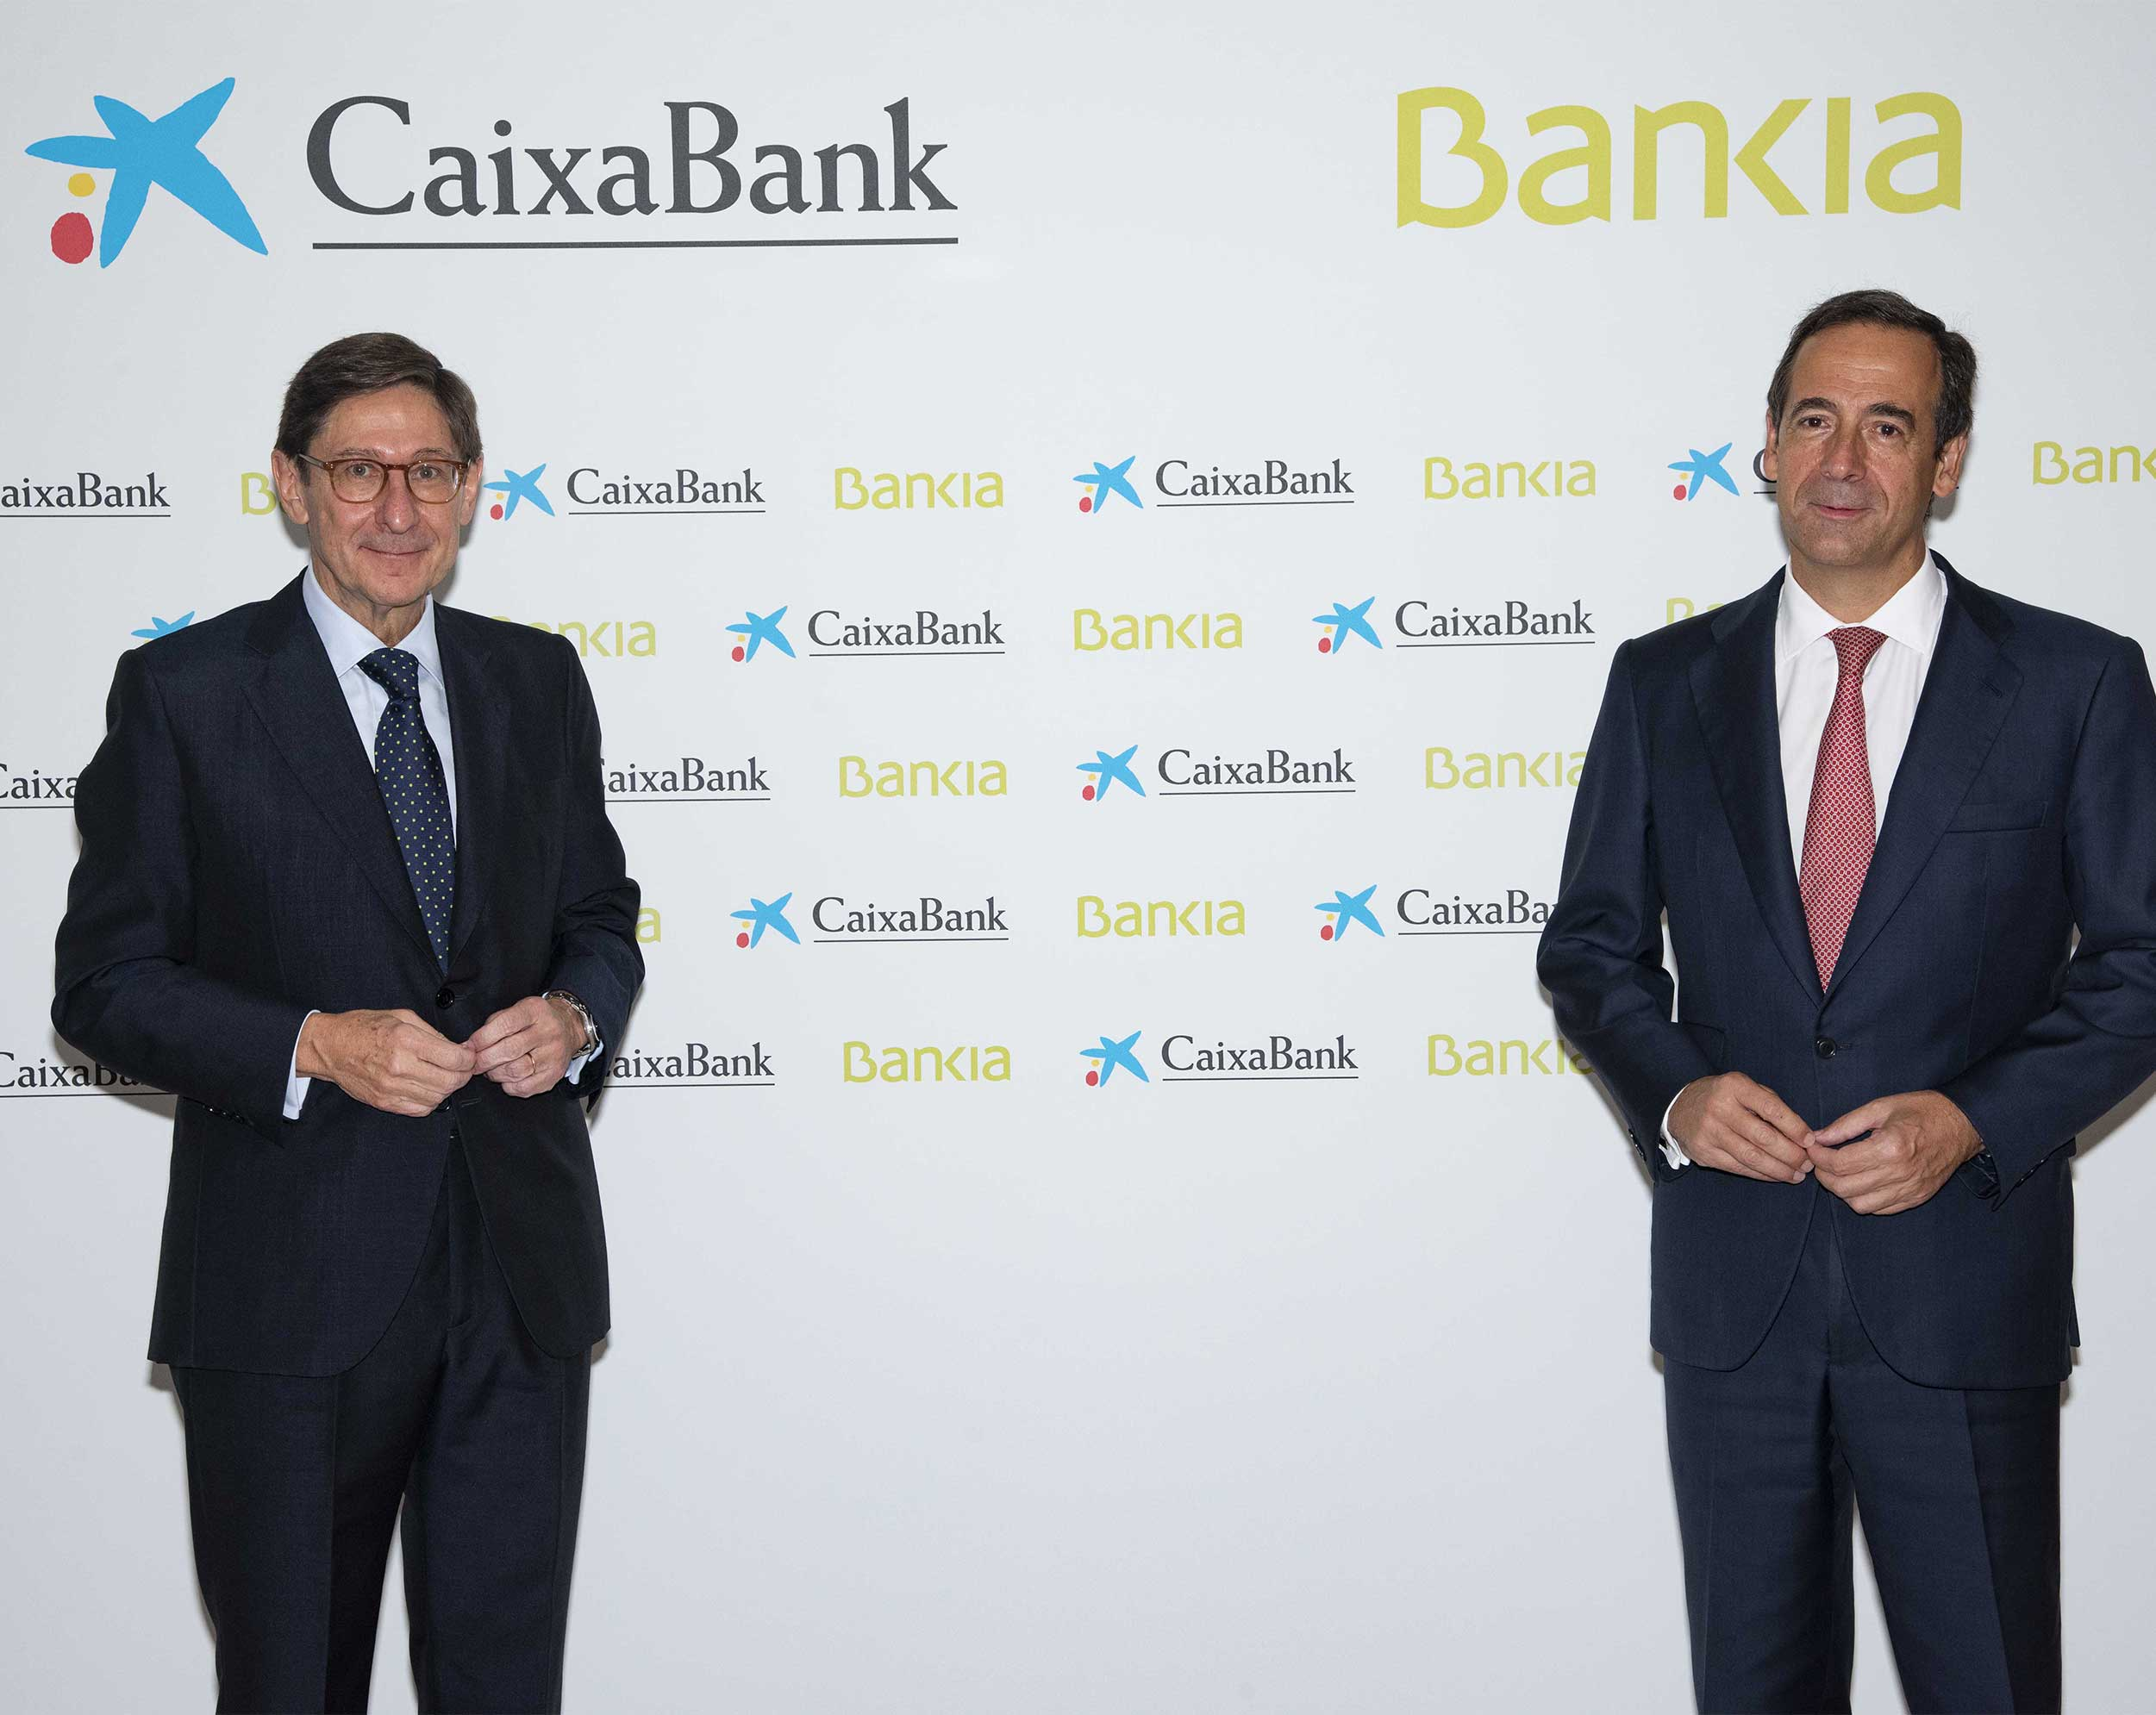 Caixa Bankia merger will create Spain's largest bank at a time when consolidation is necessary for survival